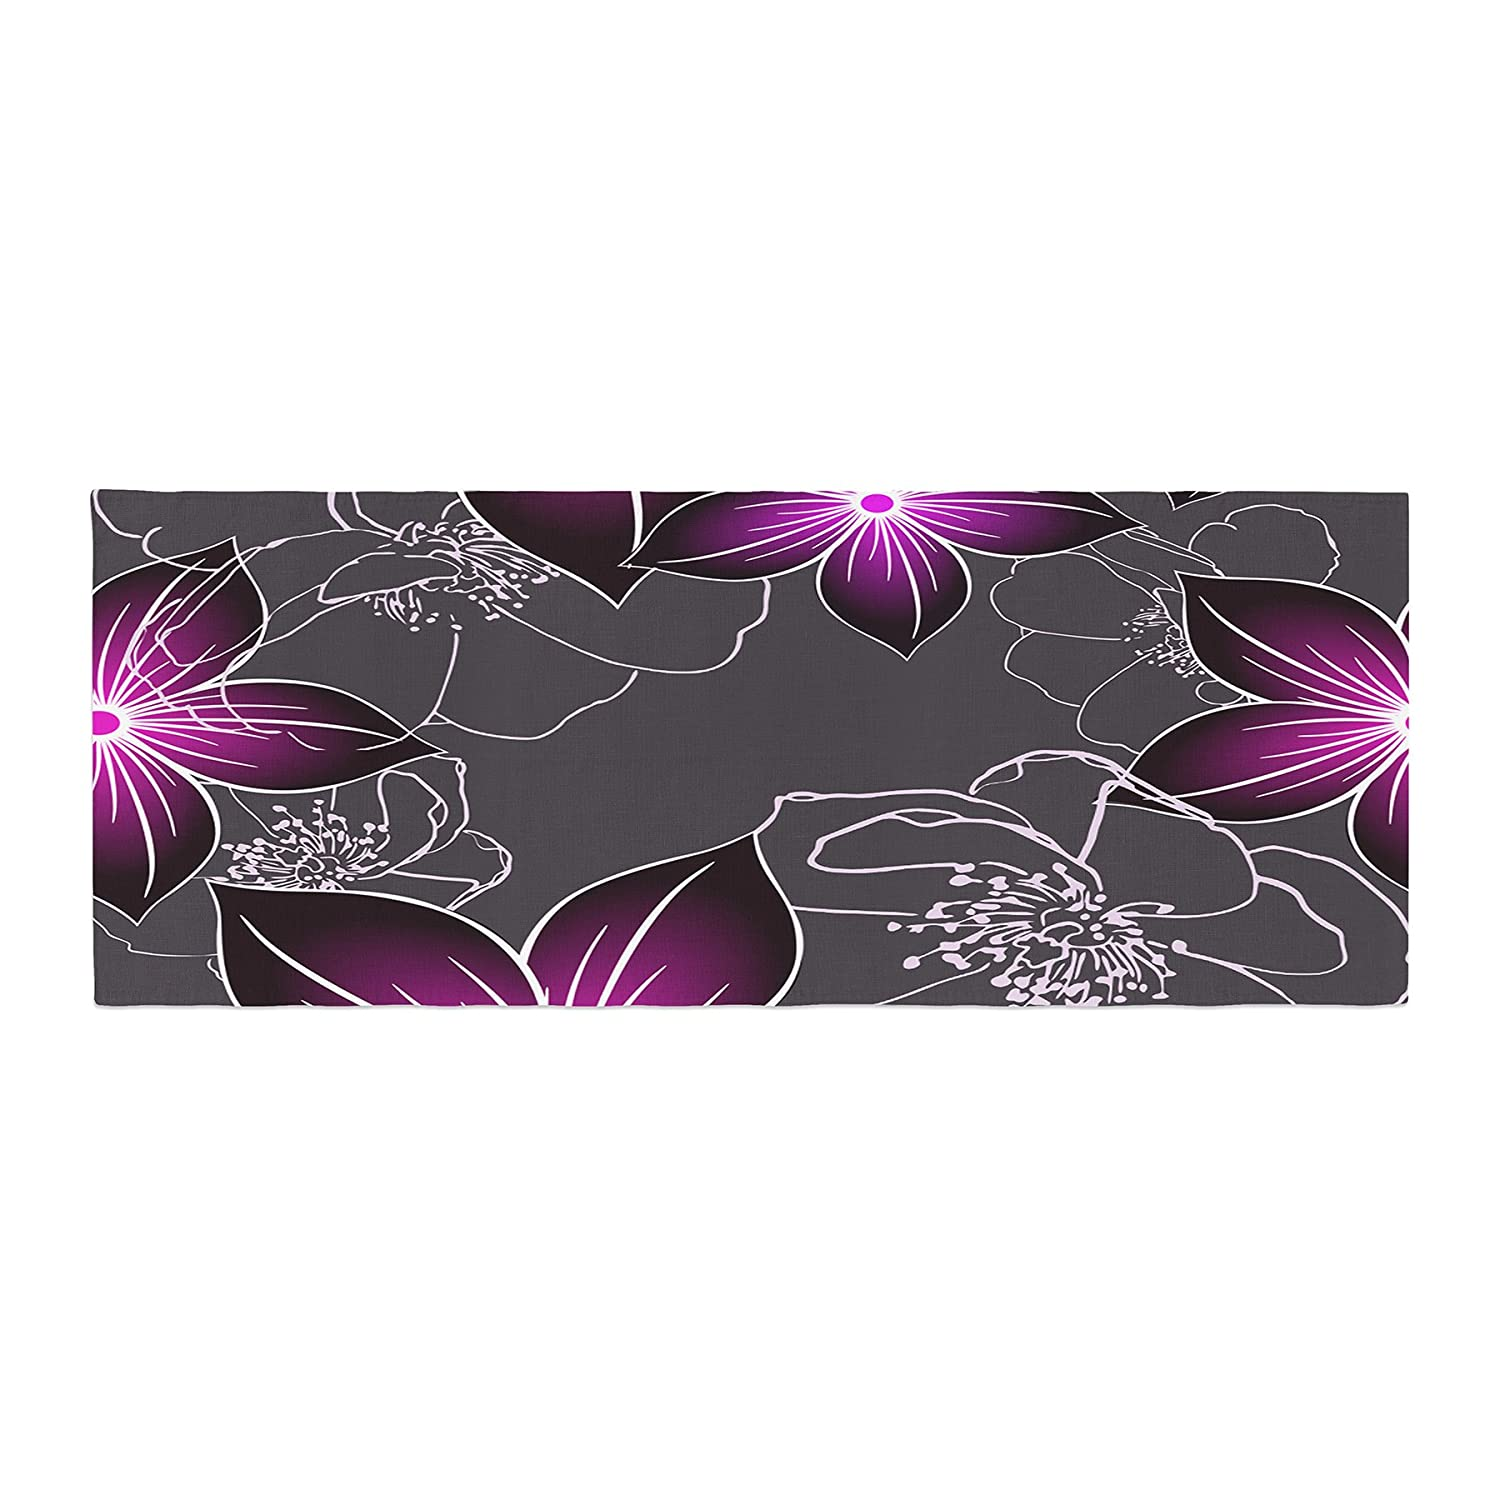 Kess InHouse Alison Coxon Charcoal And Amthyst Gray Purple Bed Runner, 34 x 86 34 x 86 AC1080ABR01